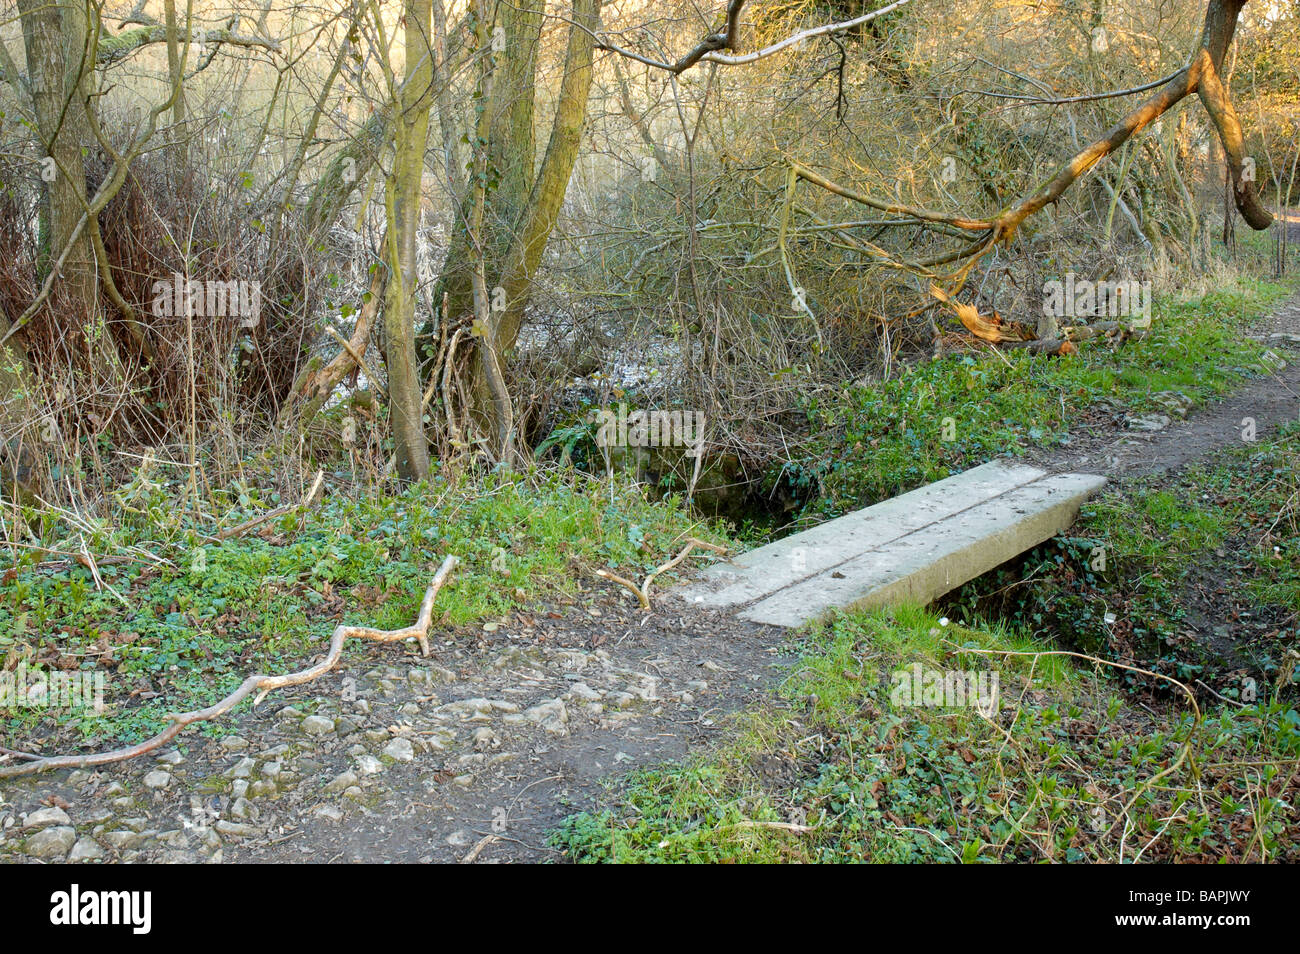 An old wooden bridge over a stream - Stock Image